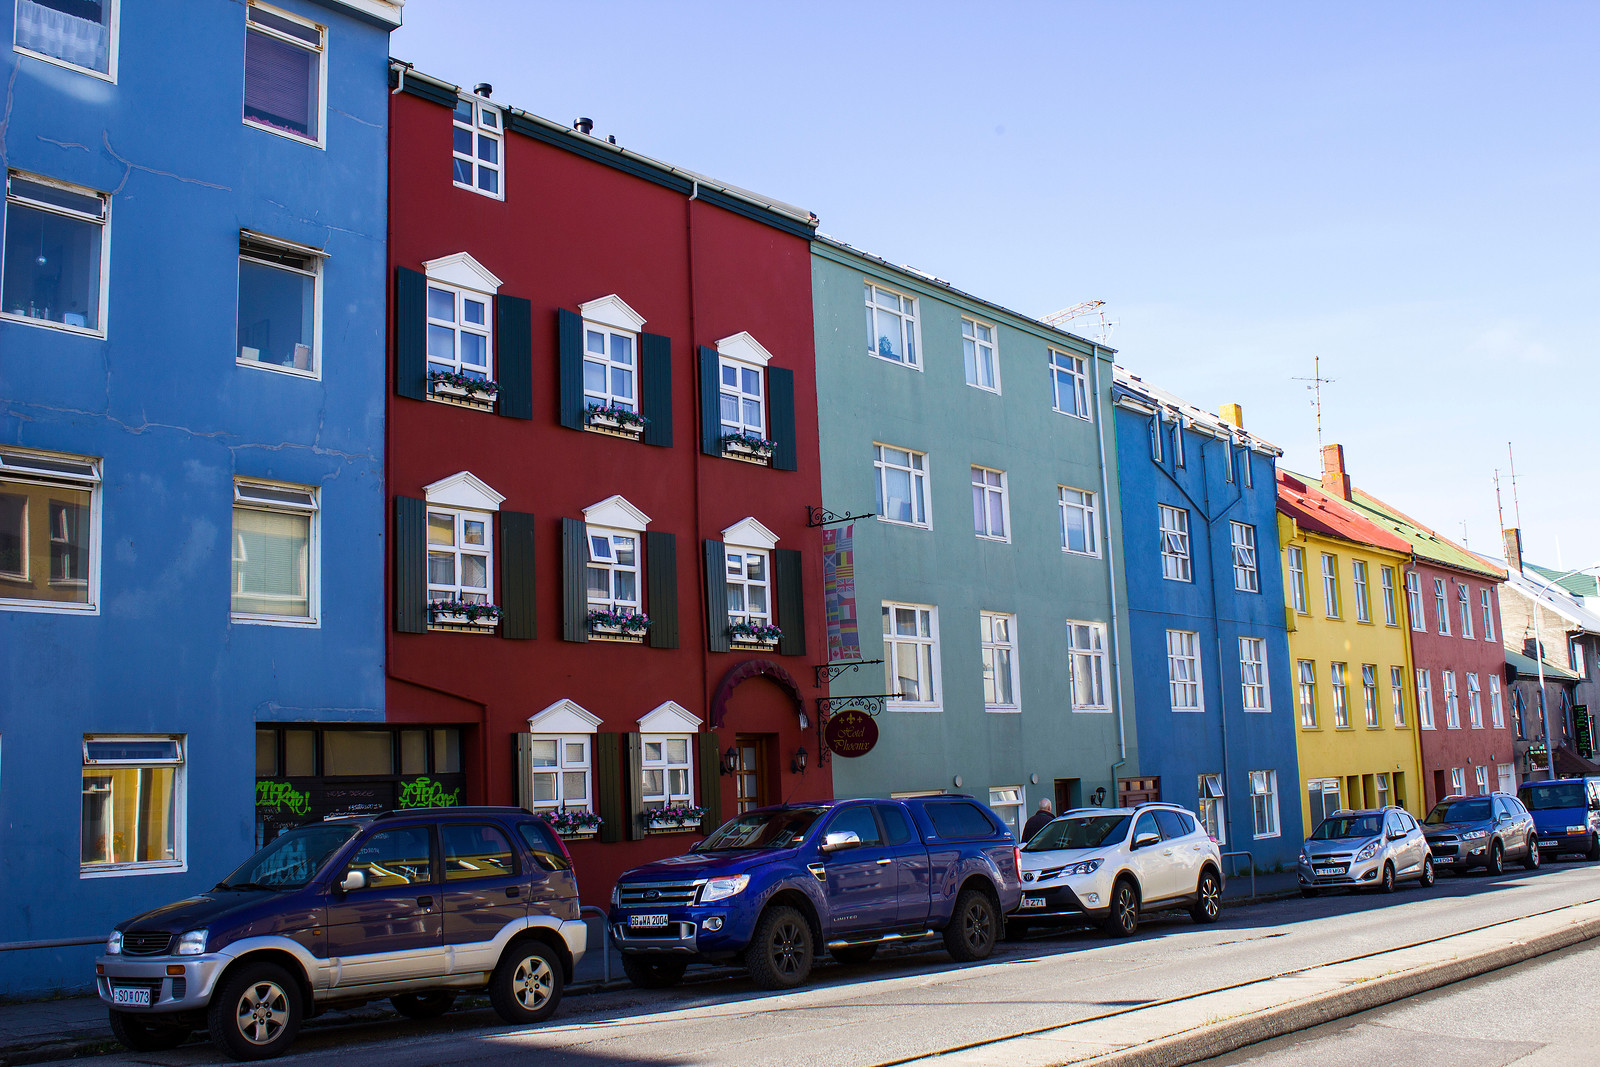 Streets of Reykjavik with colourful houses